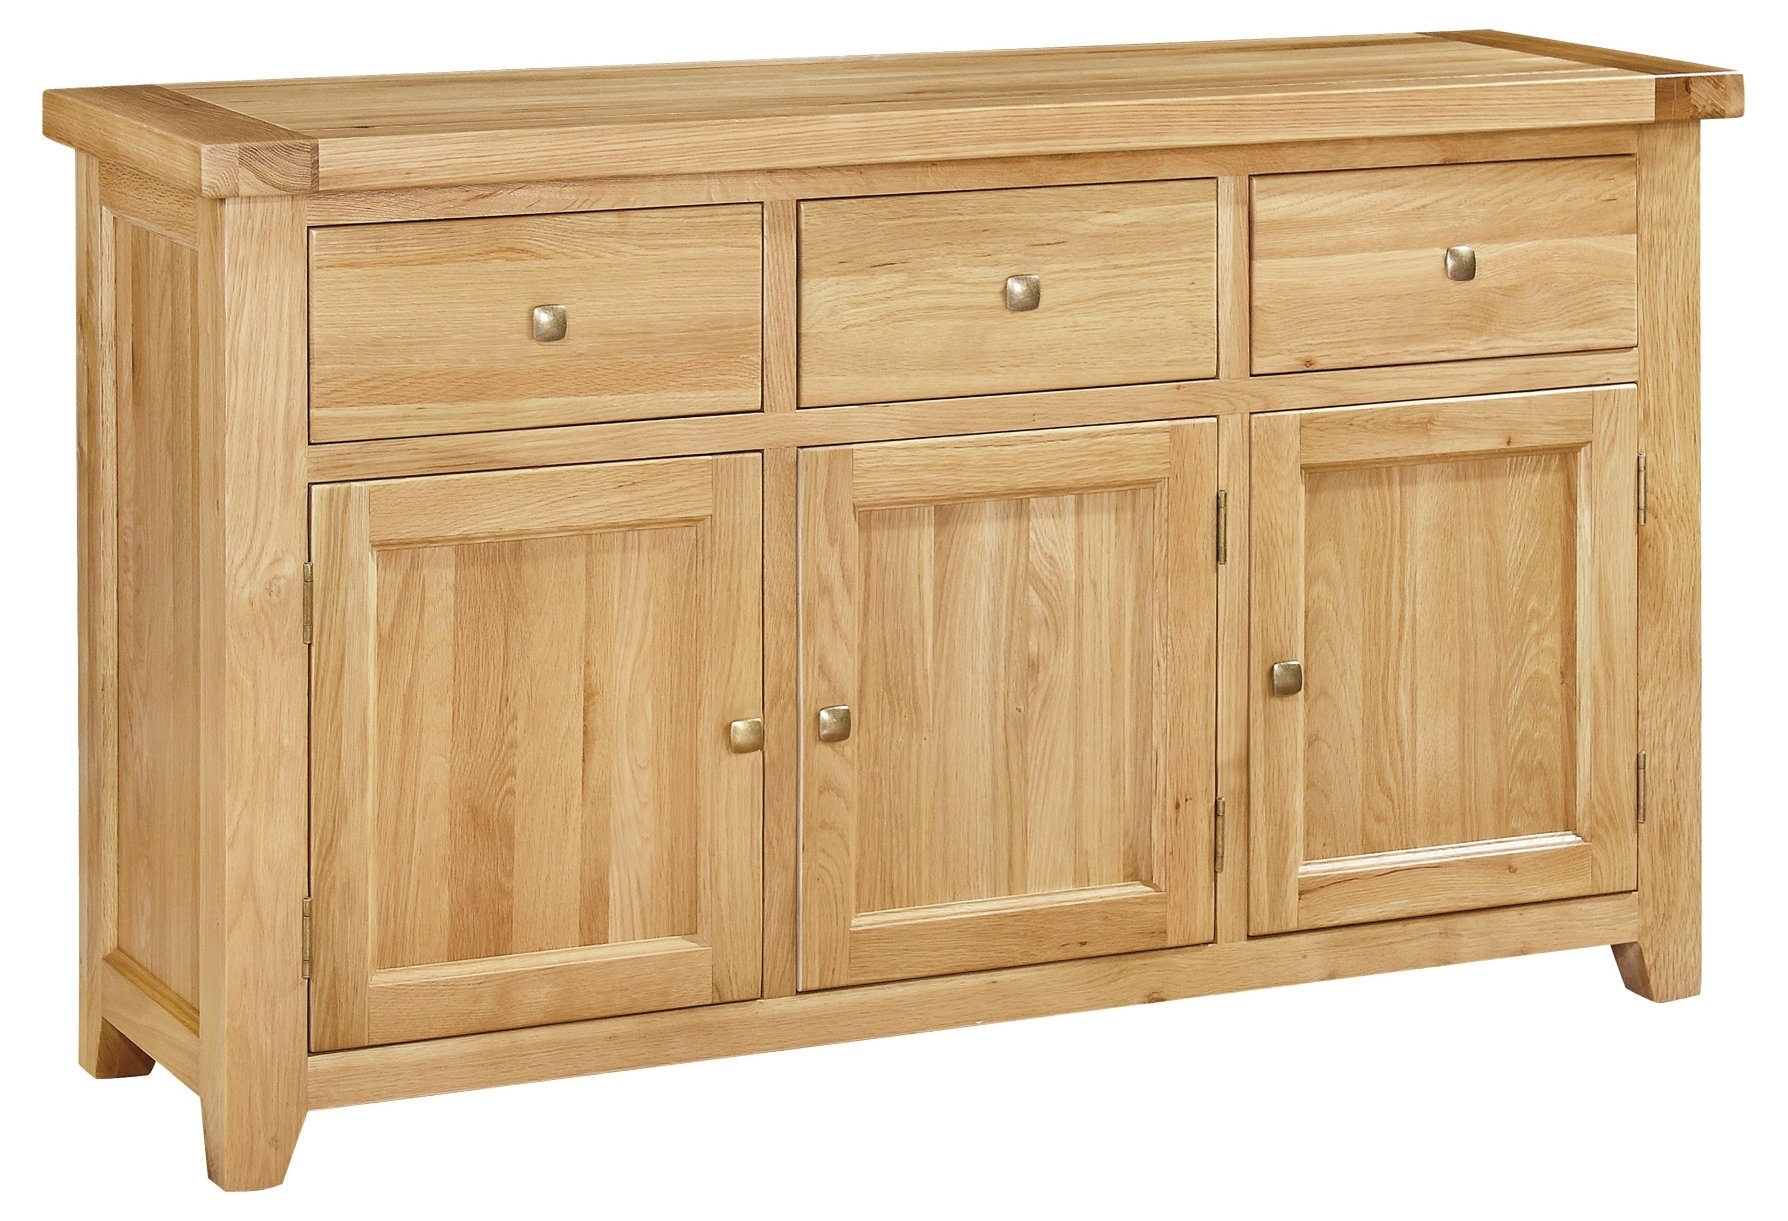 Natur Pur Paulita 3 Door 3 Drawer Sideboard | Wayfair.co.uk with 3-Door 3-Drawer Metal Inserts Sideboards (Image 21 of 30)